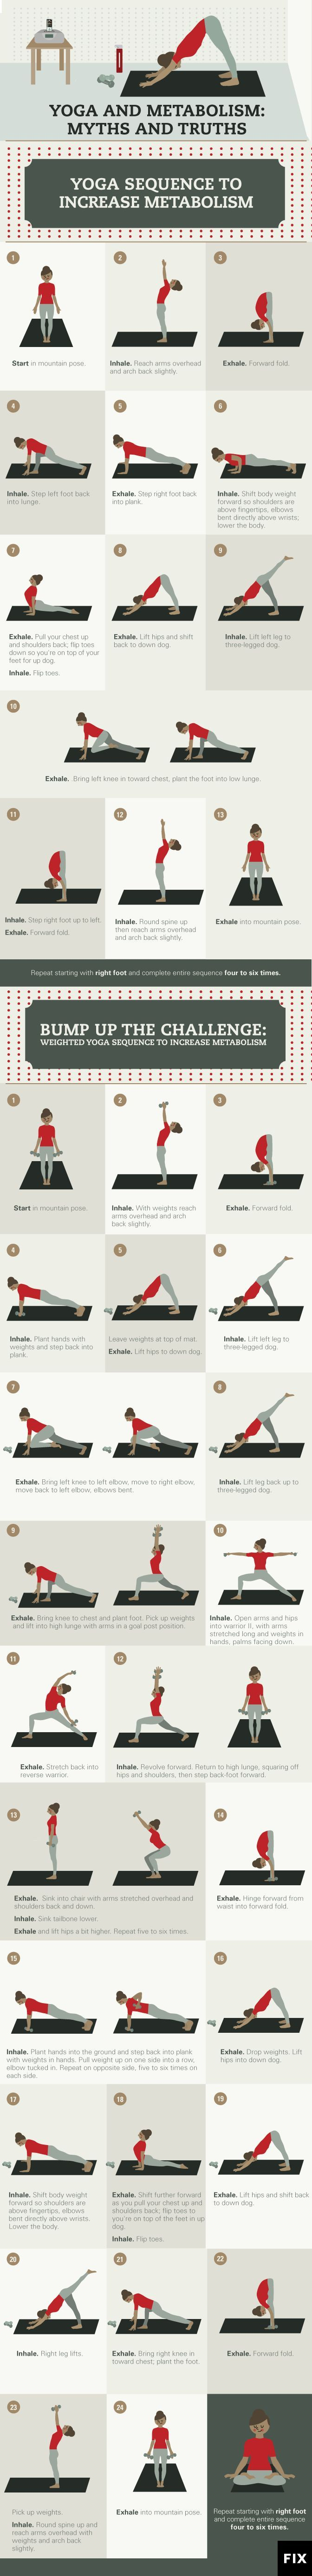 Yoga and Metabolism Myths and Truths #infographic